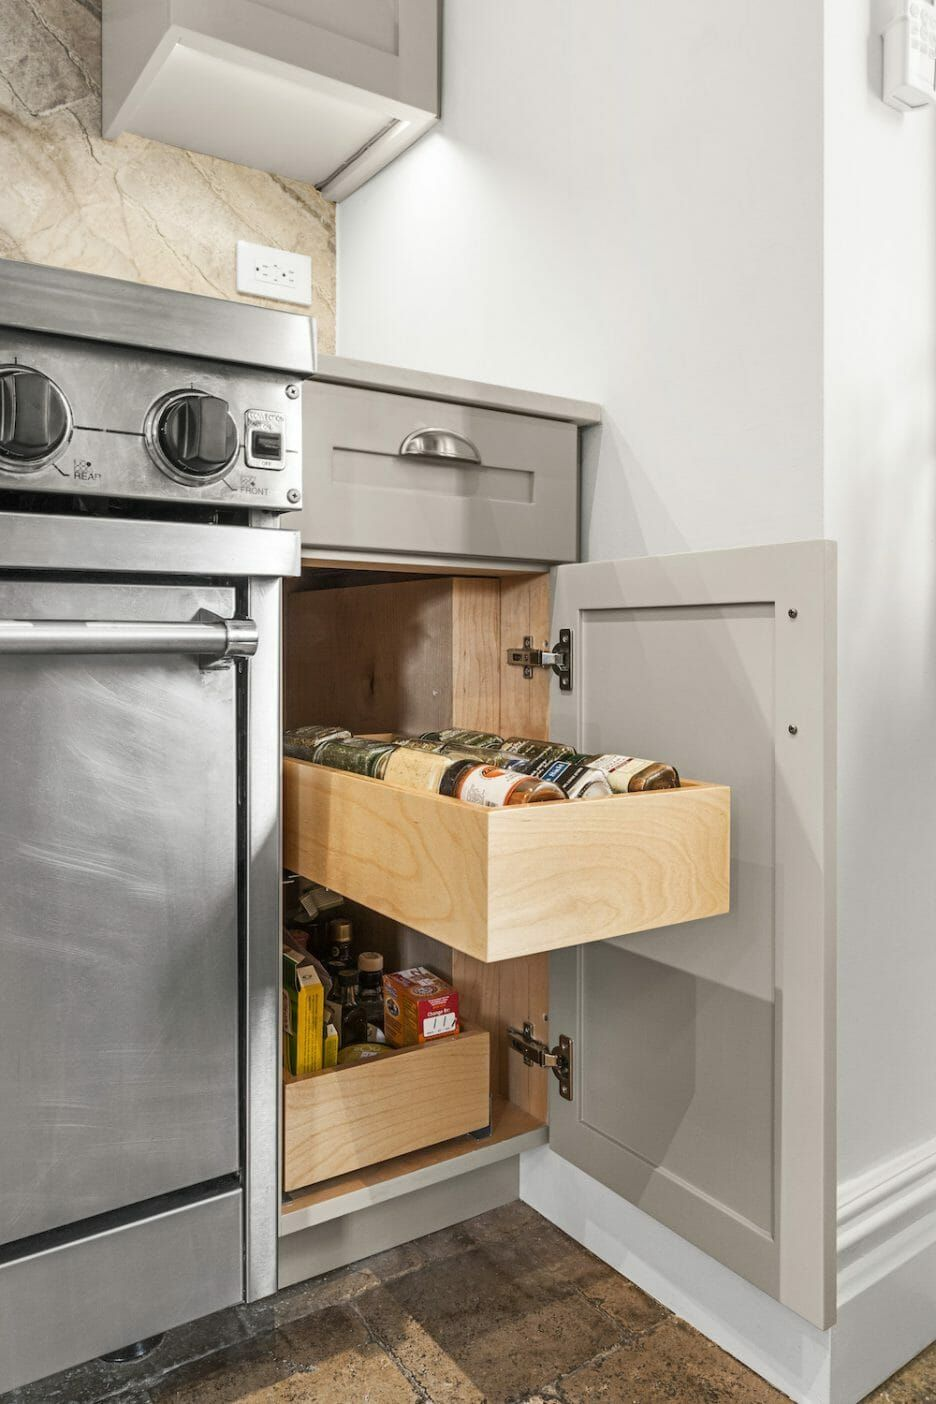 Before And After A Central Park West Apartment Renovation Kitchen Cabinet Storage Kitchens Bedrooms Kitchen Trends